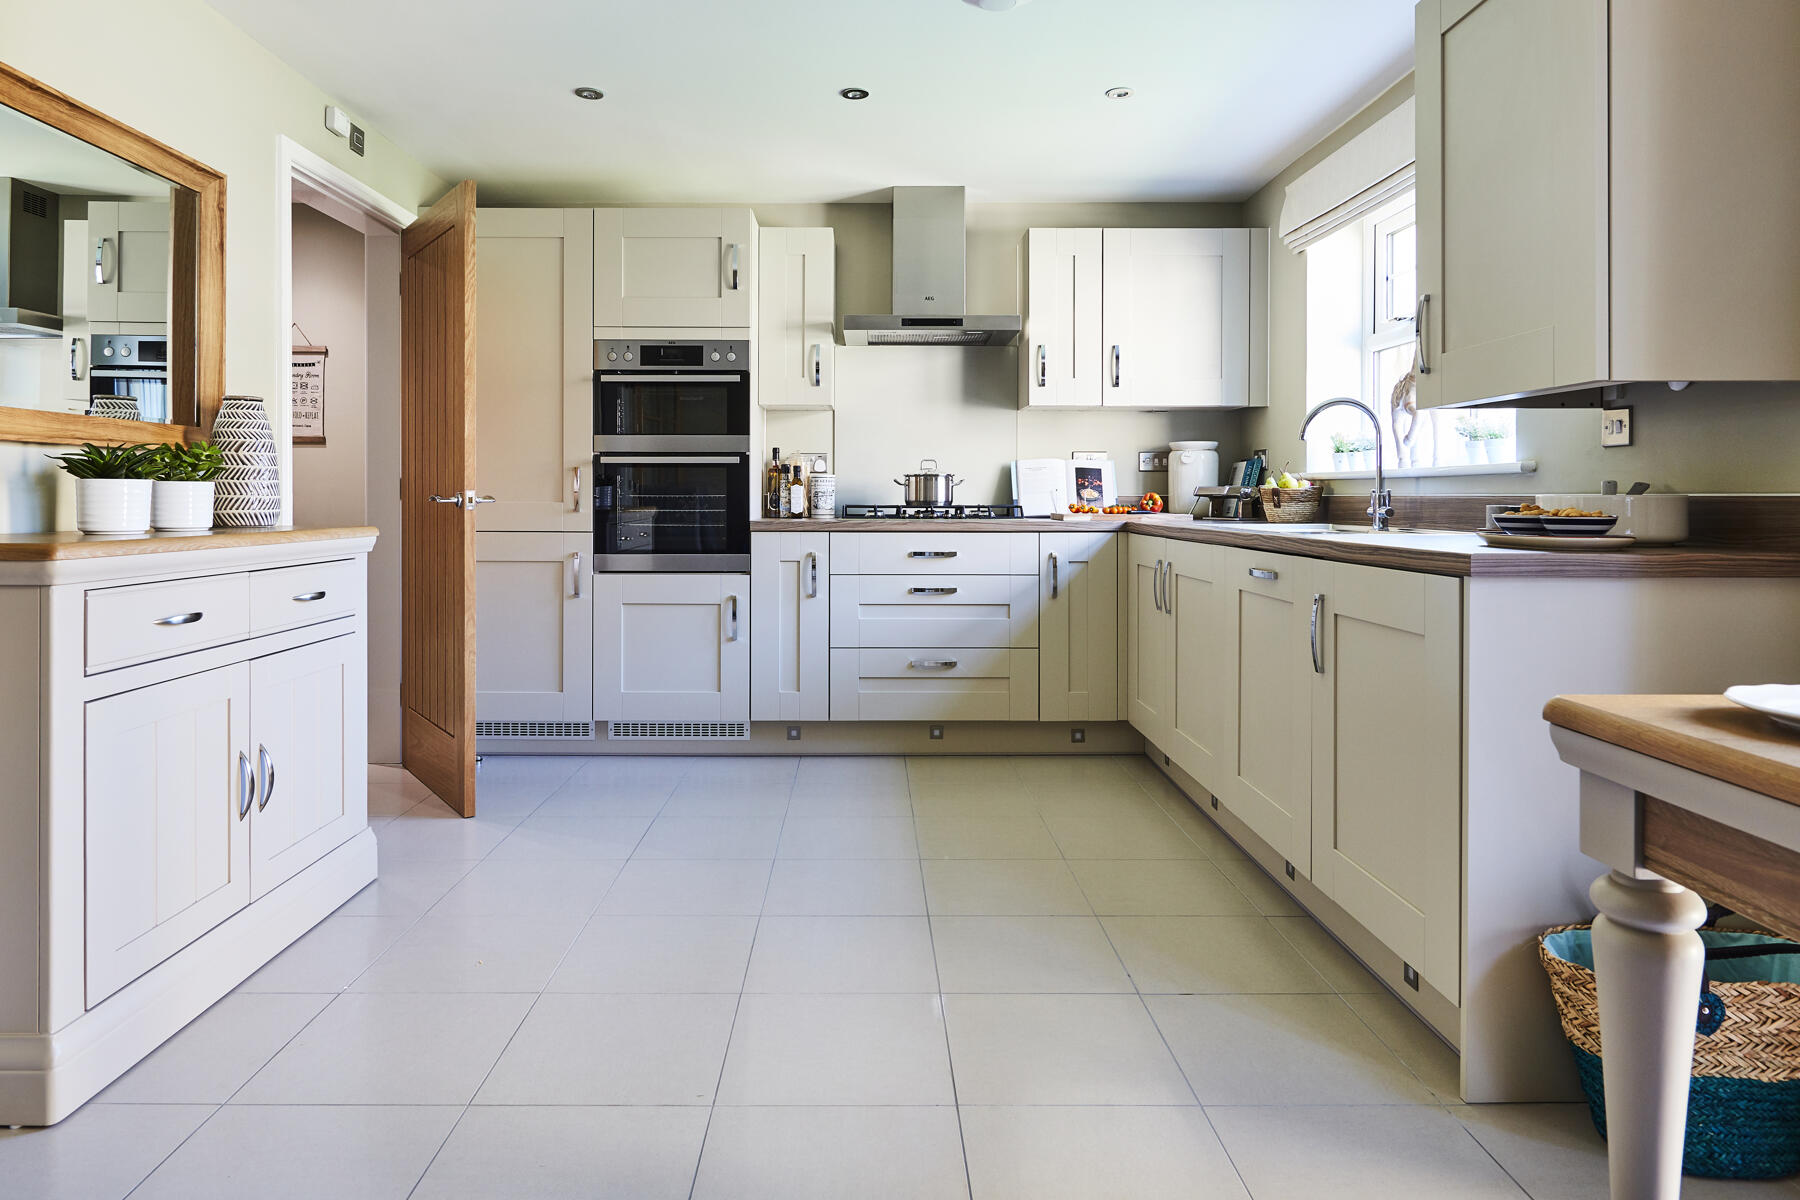 TW Man_Half Penny Meadows_Clitheroe_PA42_Lydford_Kitchen_1800x1200